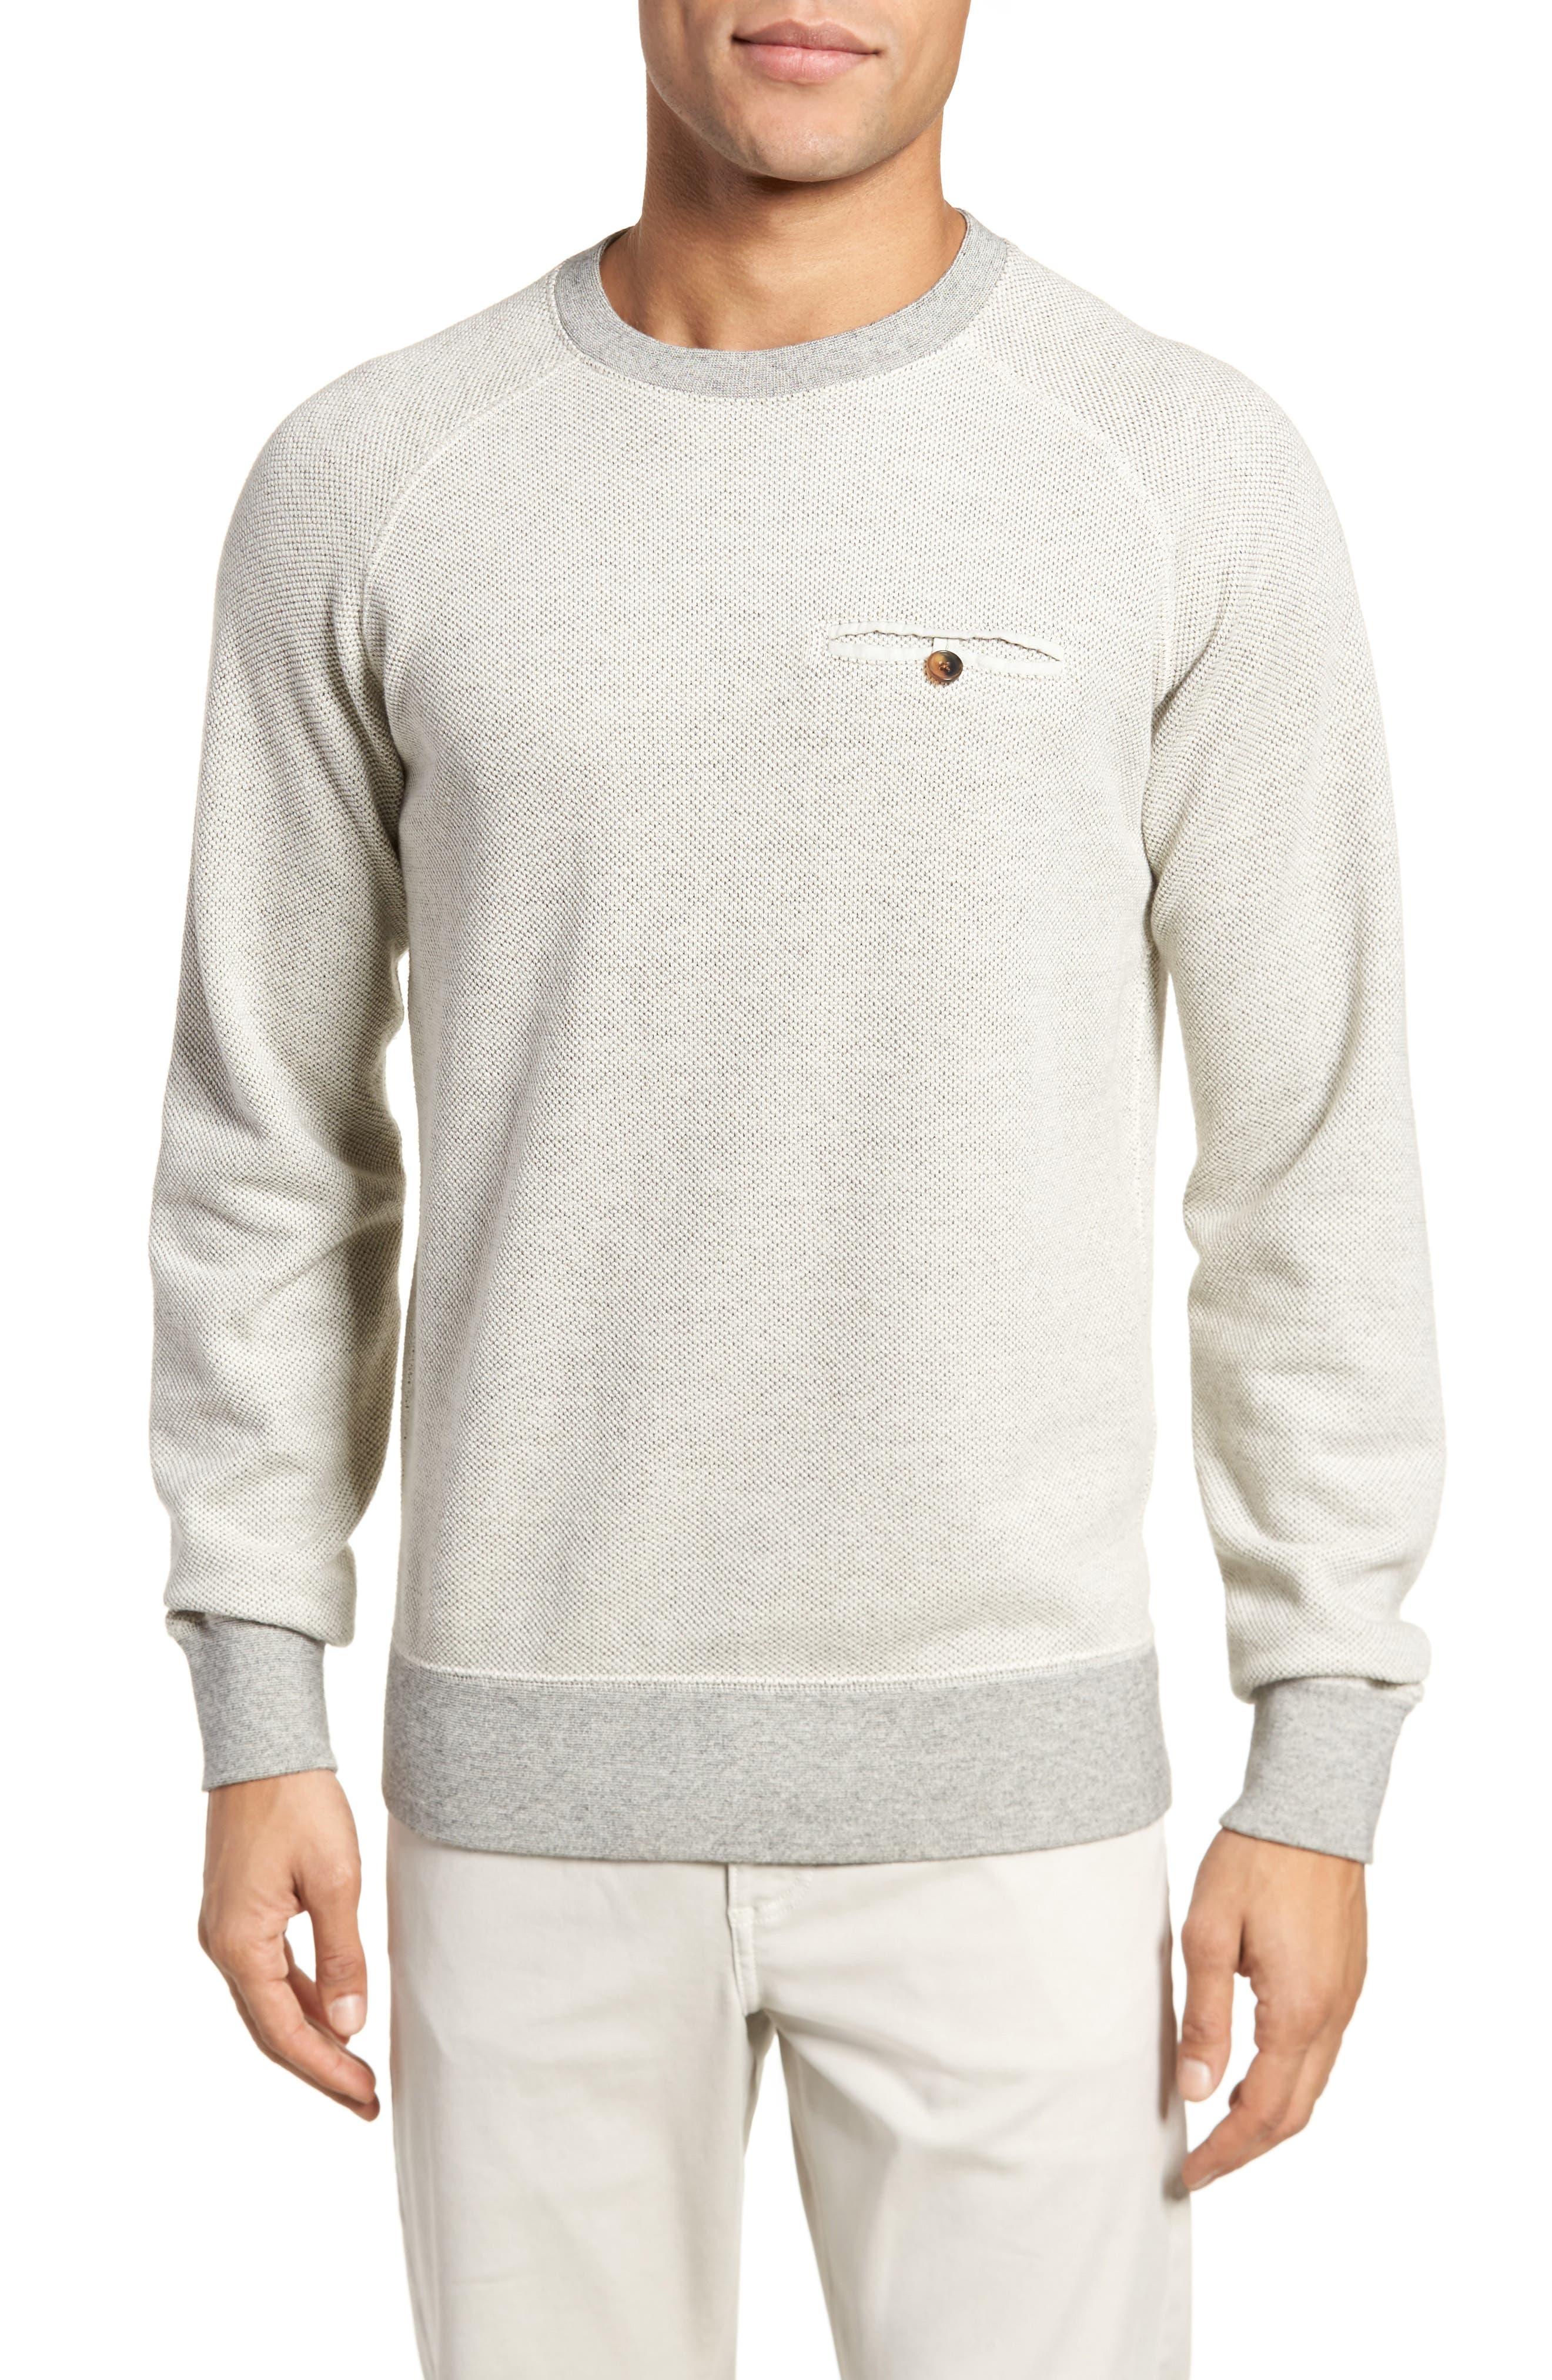 Tommy Pullover Sweatshirt,                             Main thumbnail 1, color,                             032